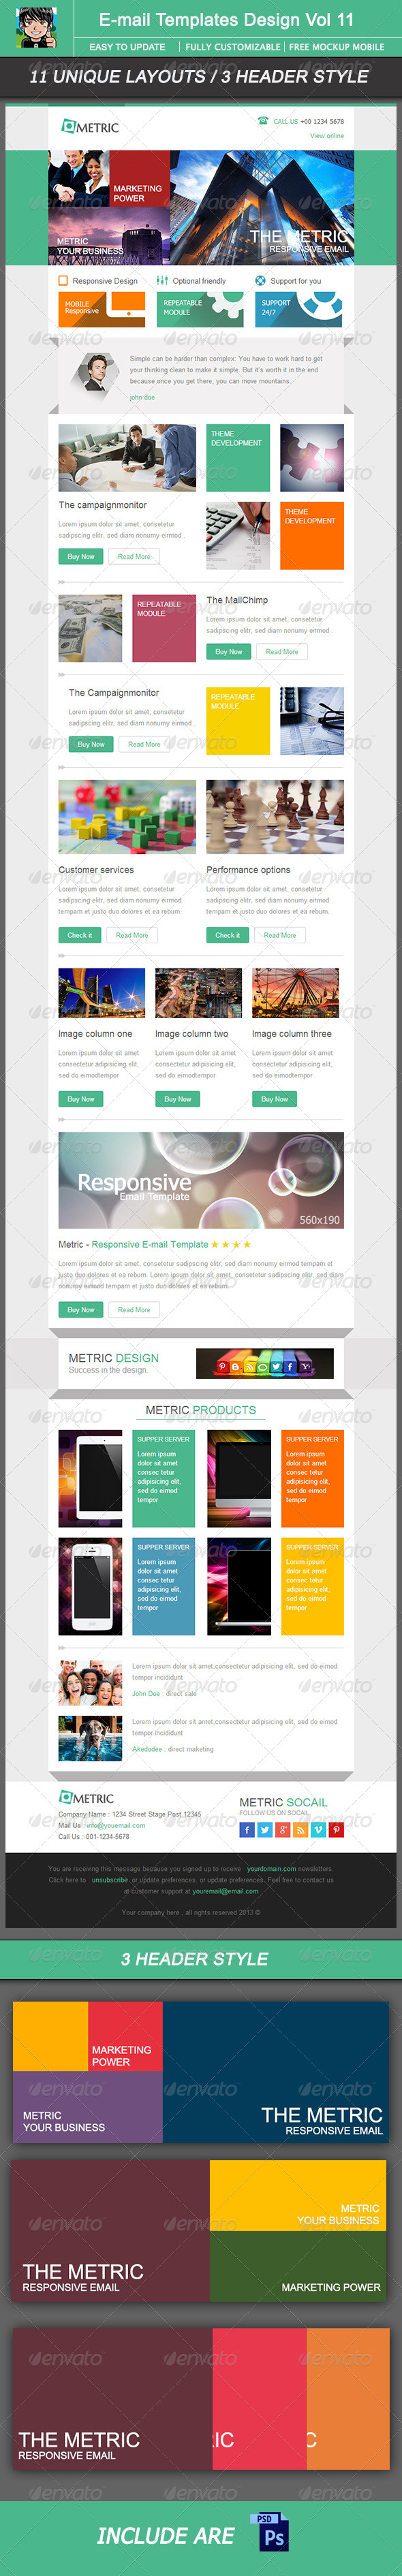 GraphicRiver Metric-Email Template Design Vol 11 5626008